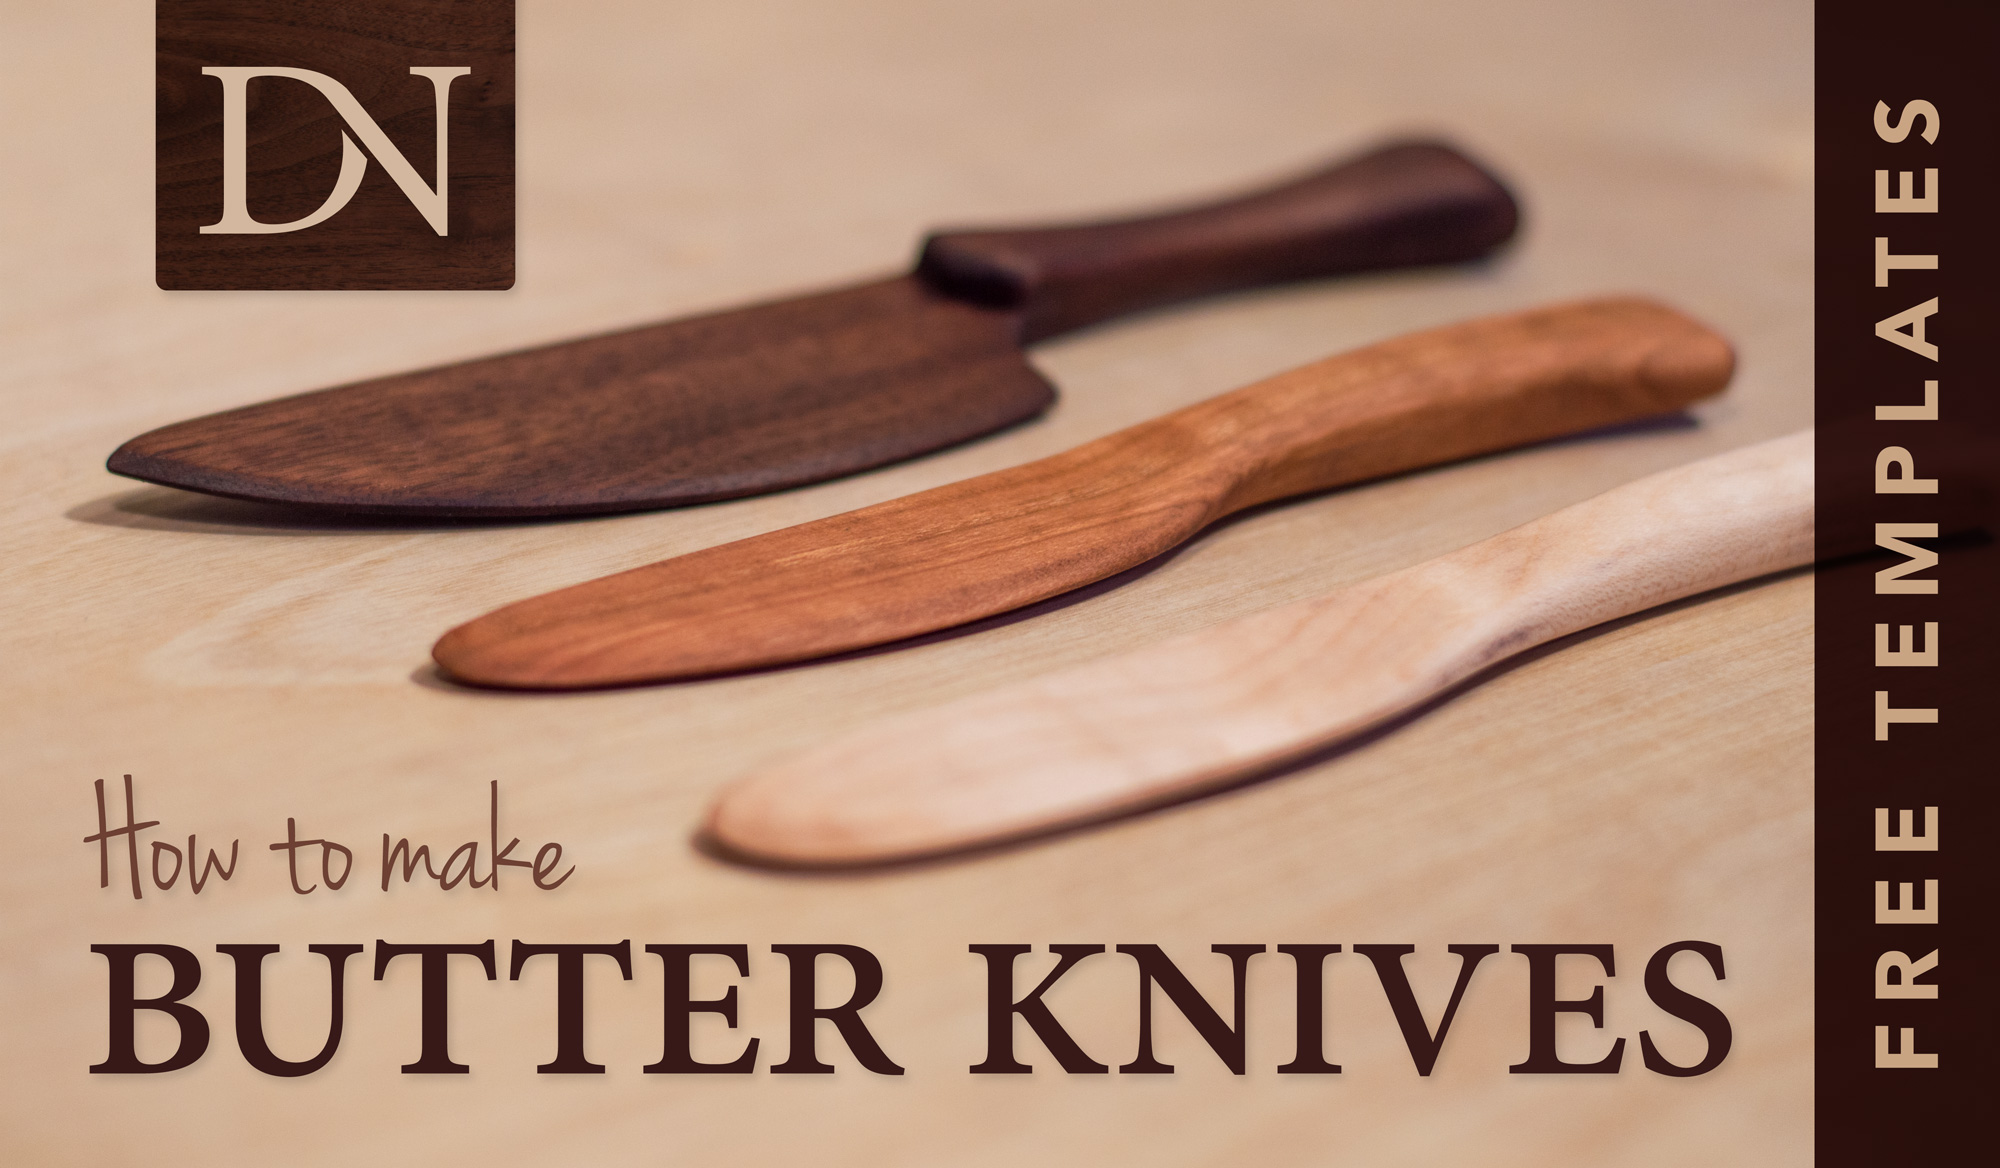 Make Butter Knives Dn Handcrafted